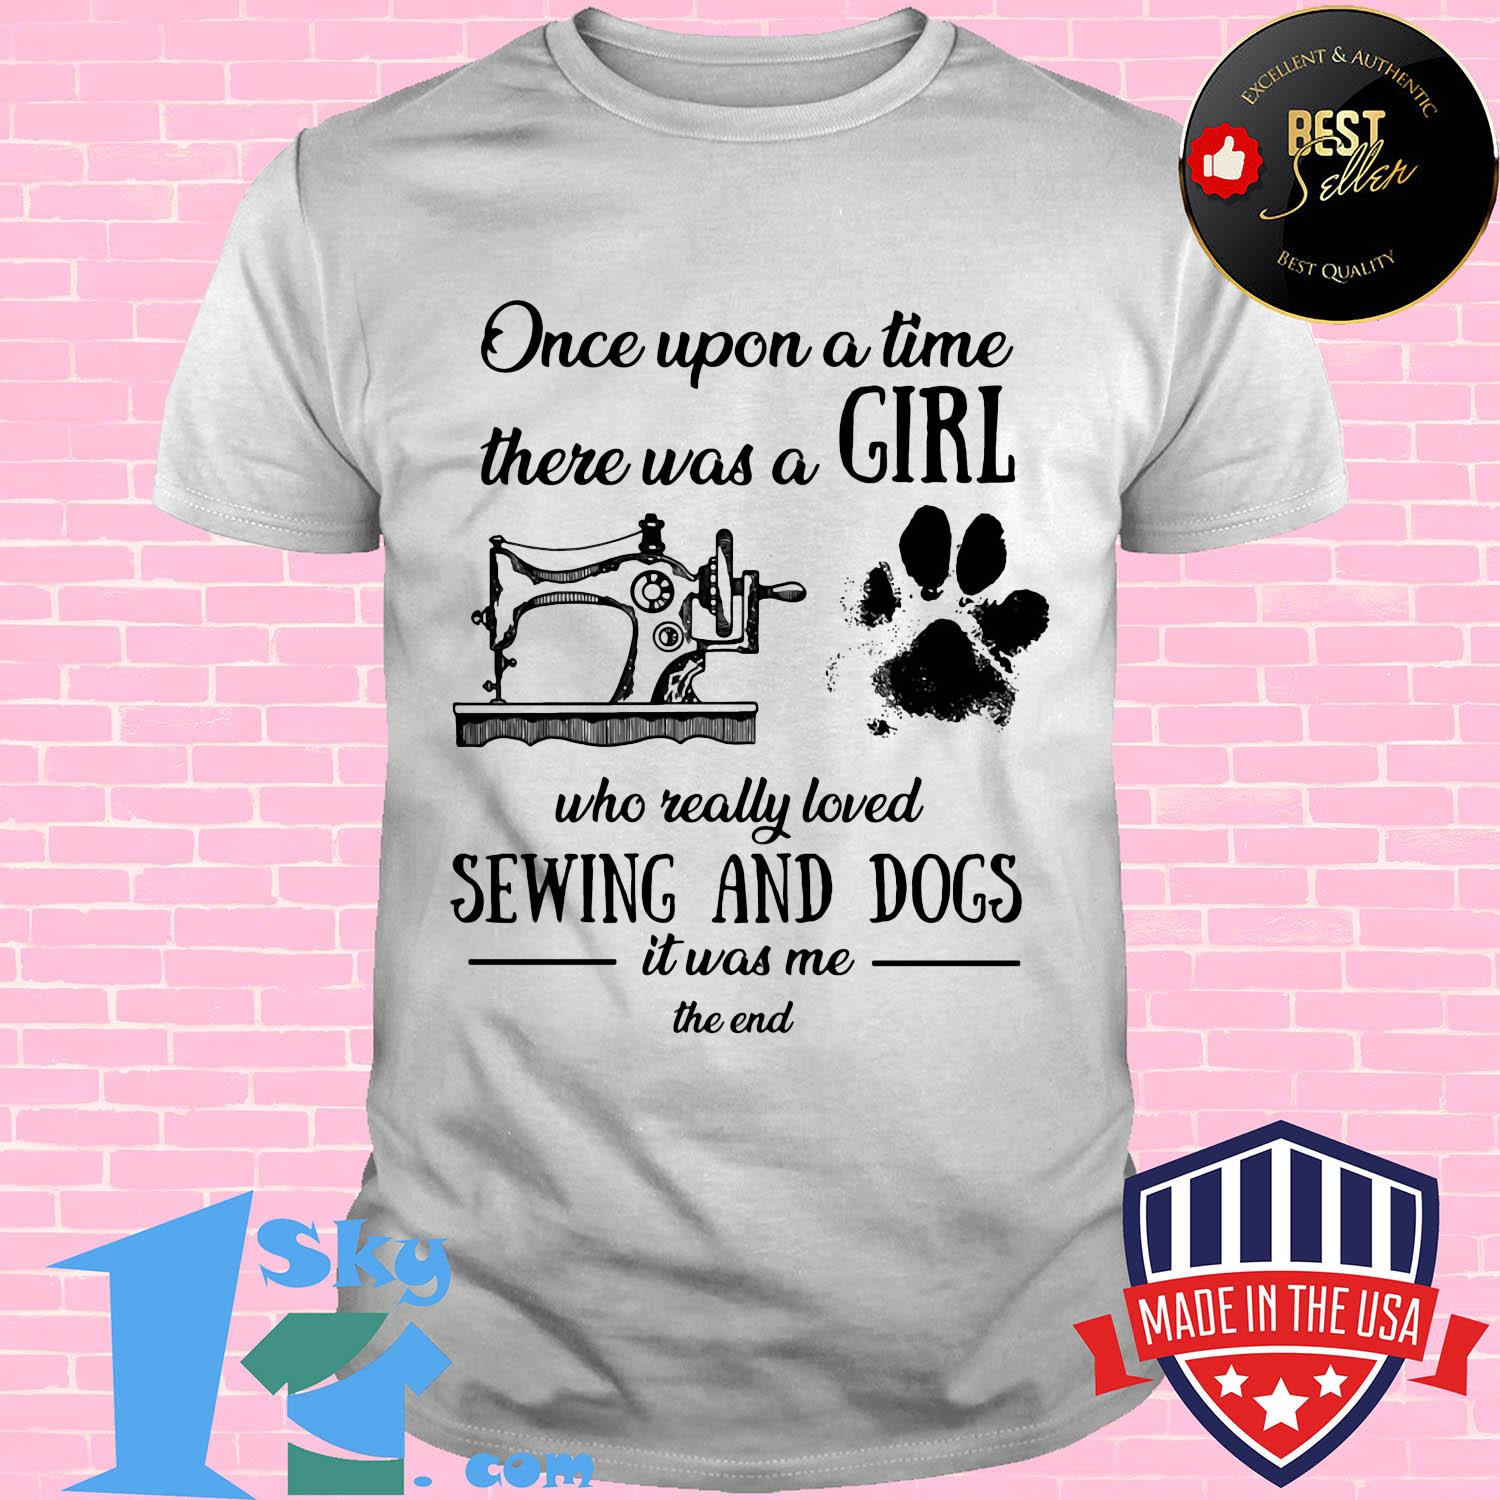 Once upon a time there was a girl sewing and dogs shirt